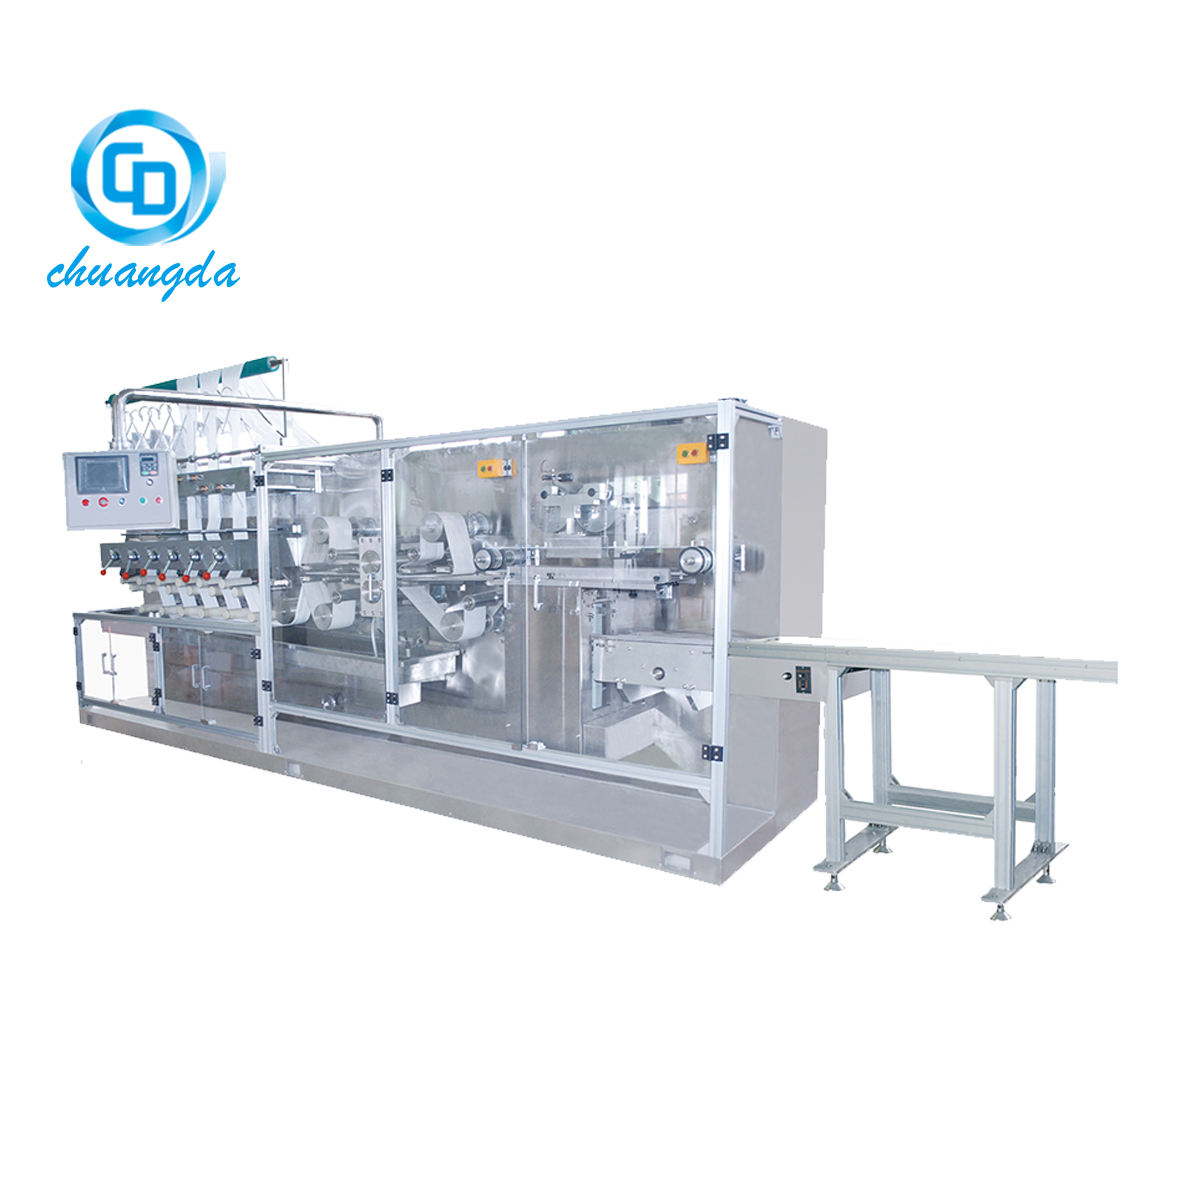 CD-180I Auto wet tissue folding manufacturing machine